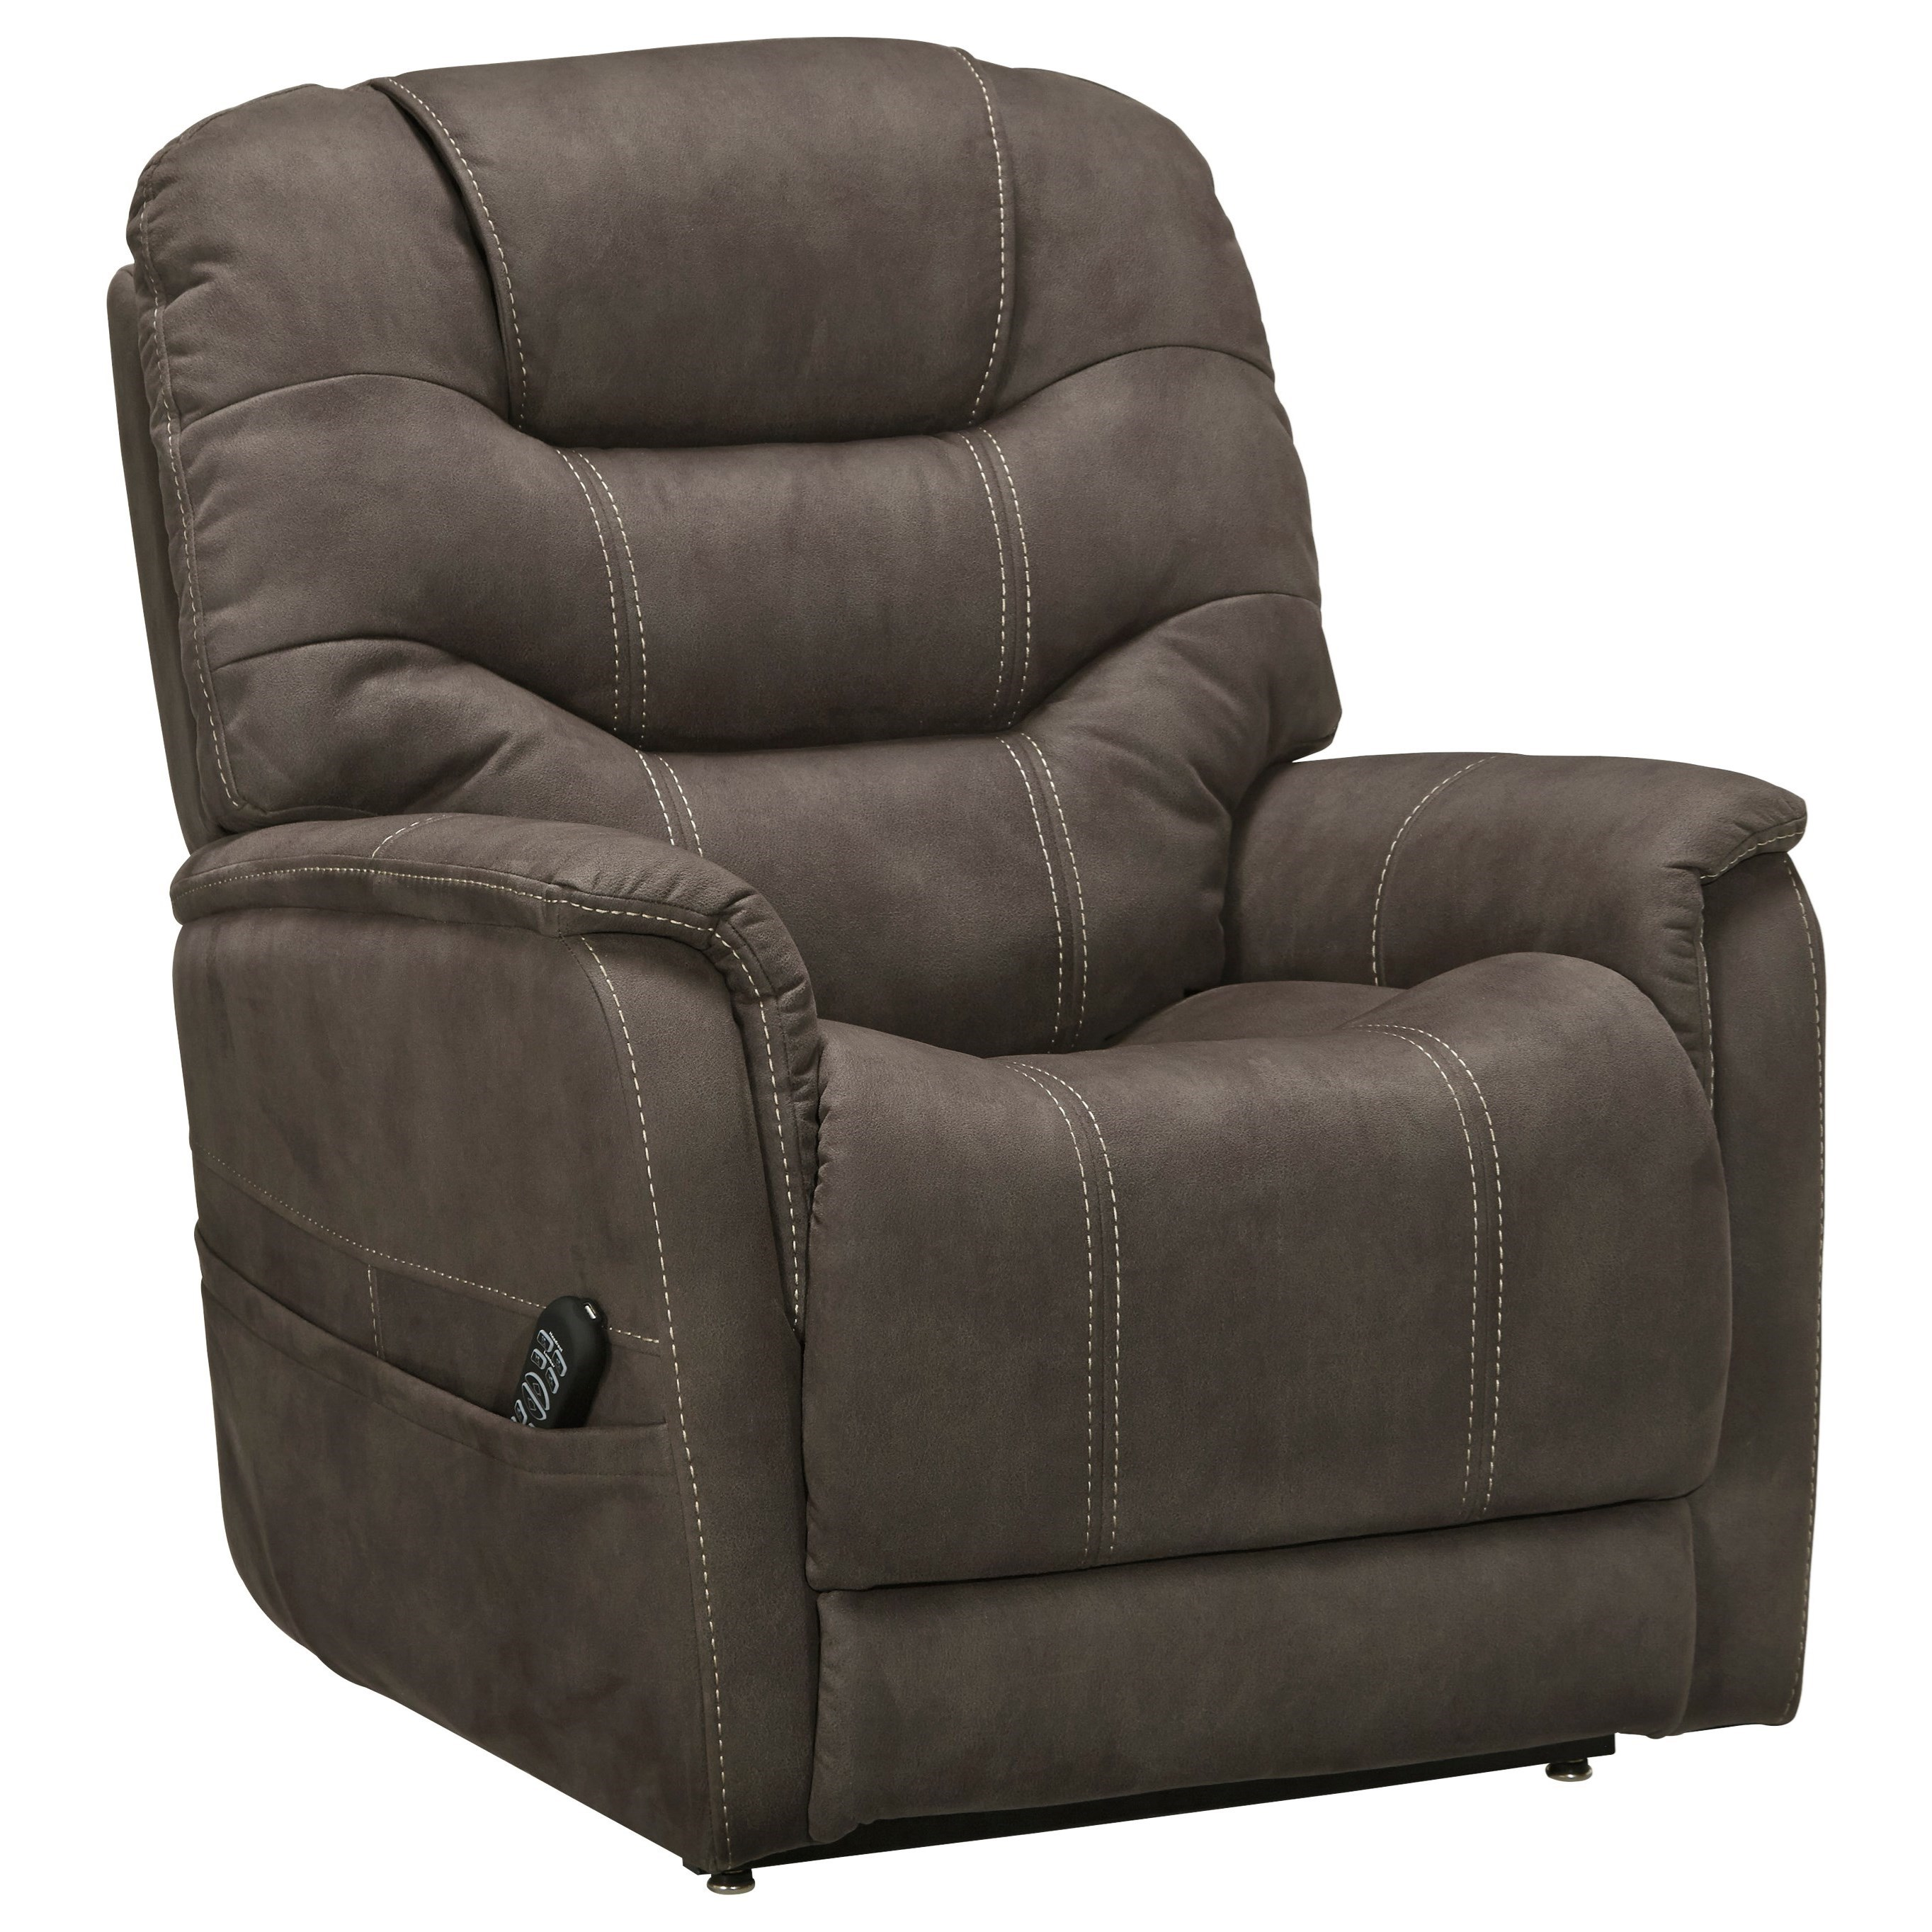 Ashley Recliner Chair Signature Design By Ashley Ballister Power Lift Recliner